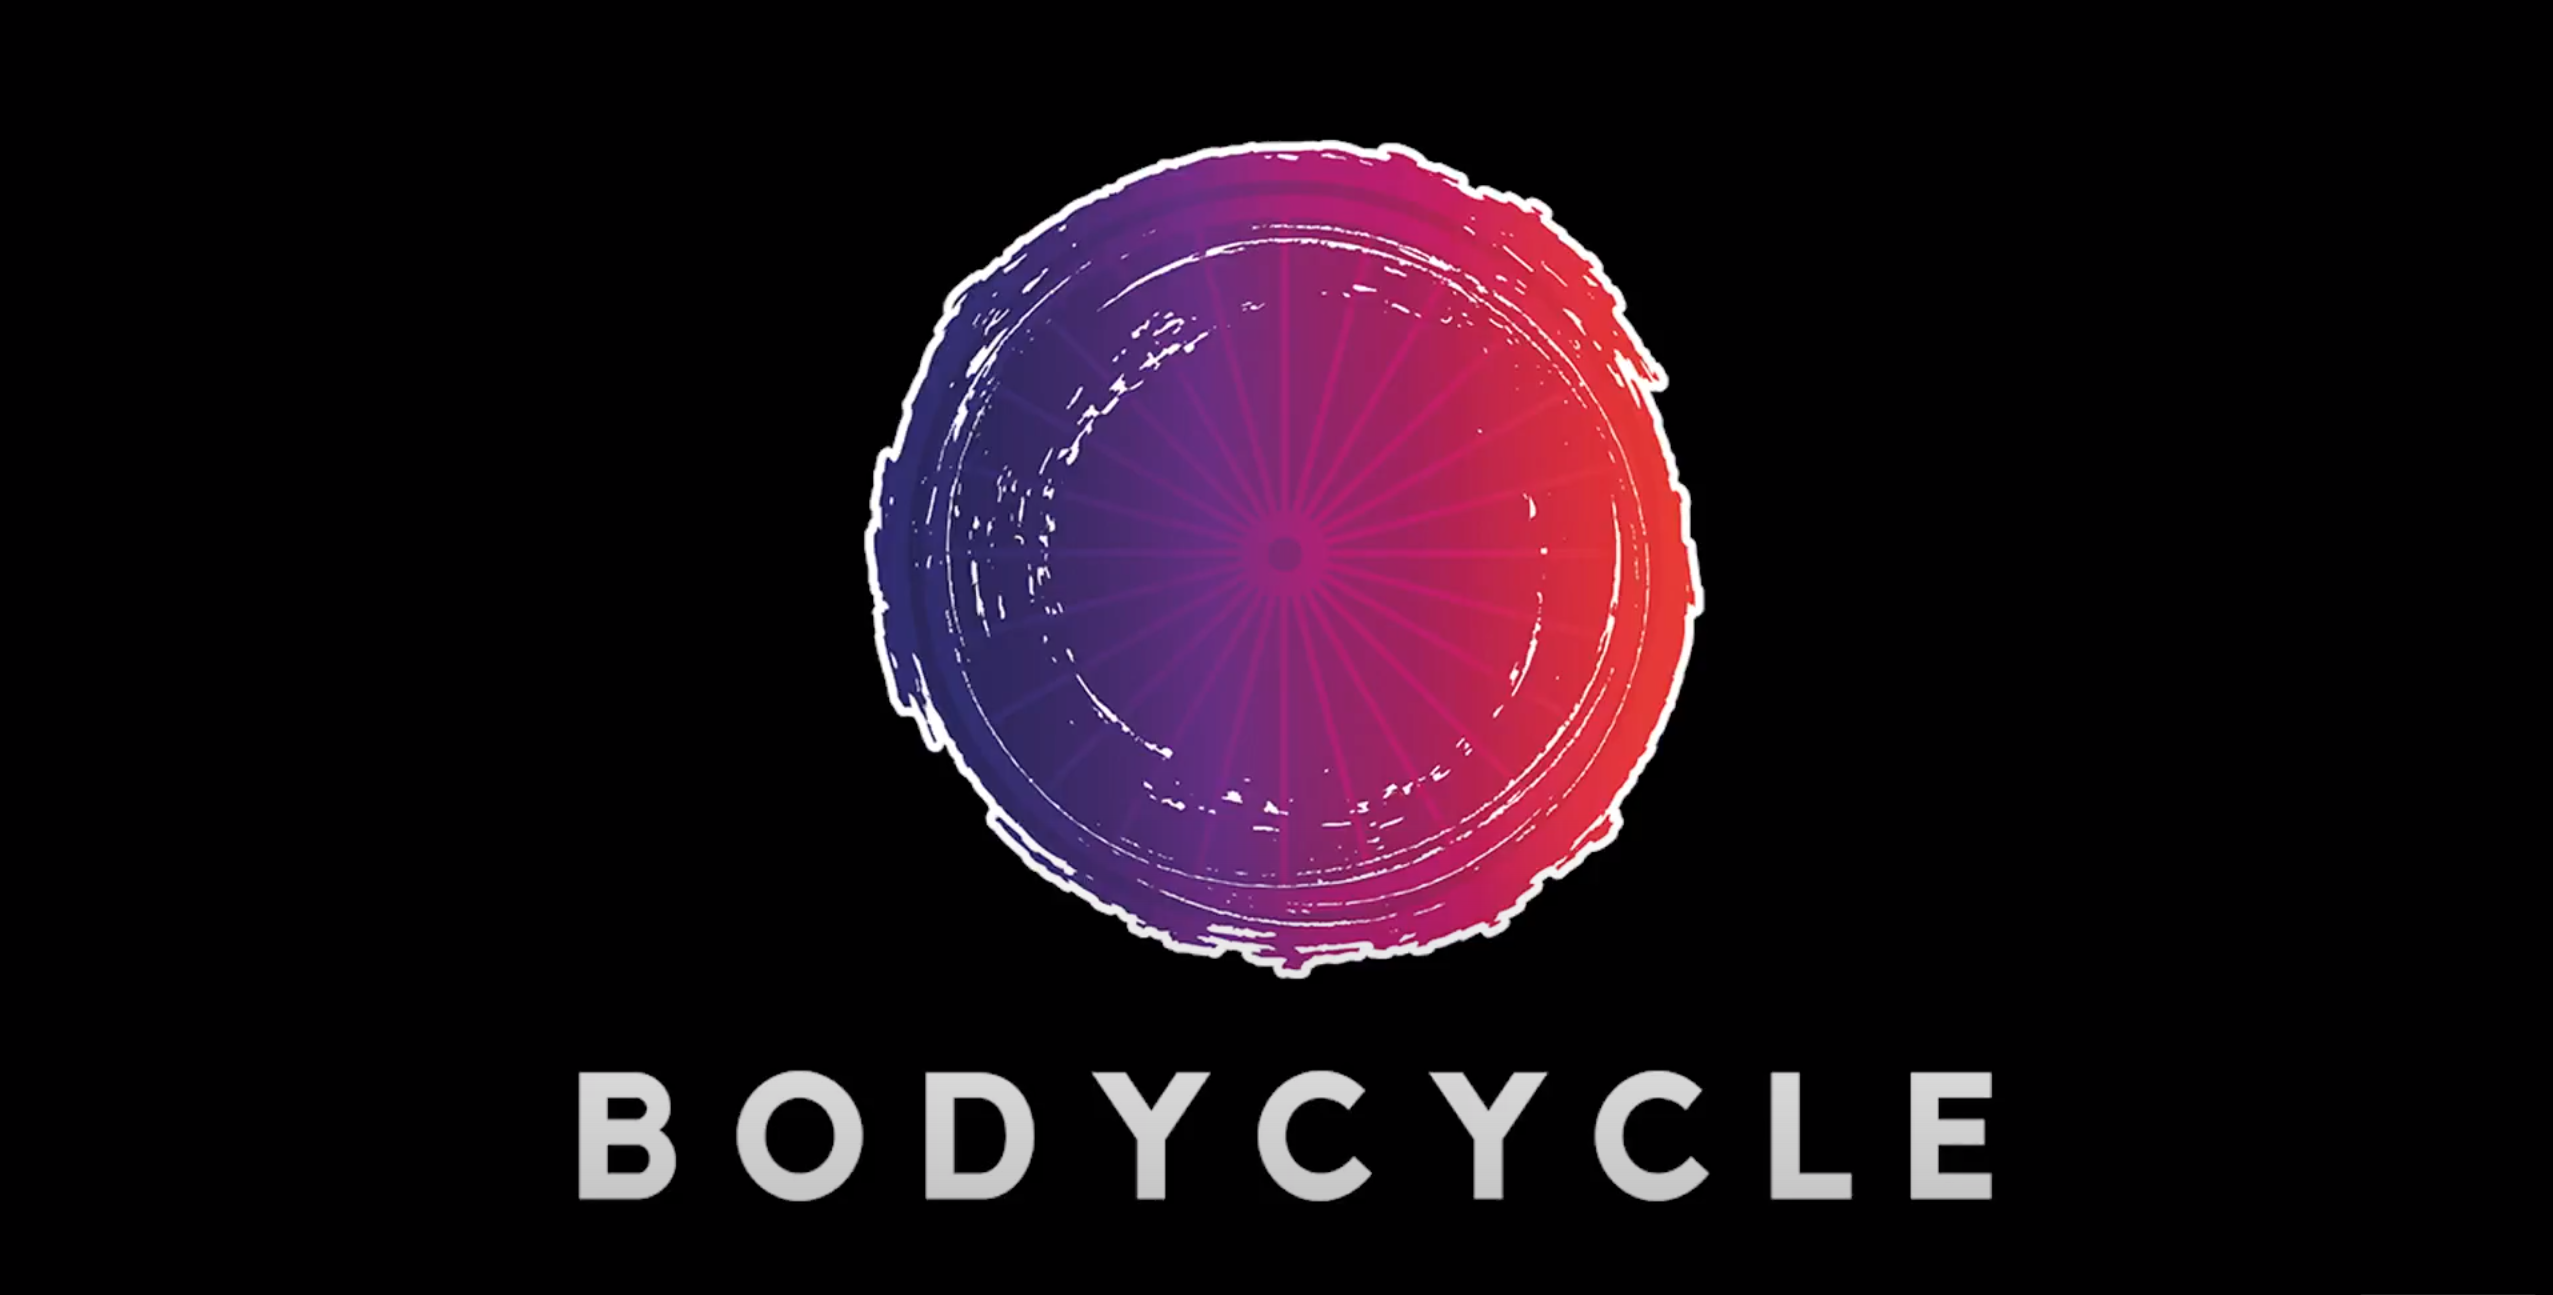 Bodycycle promotional video